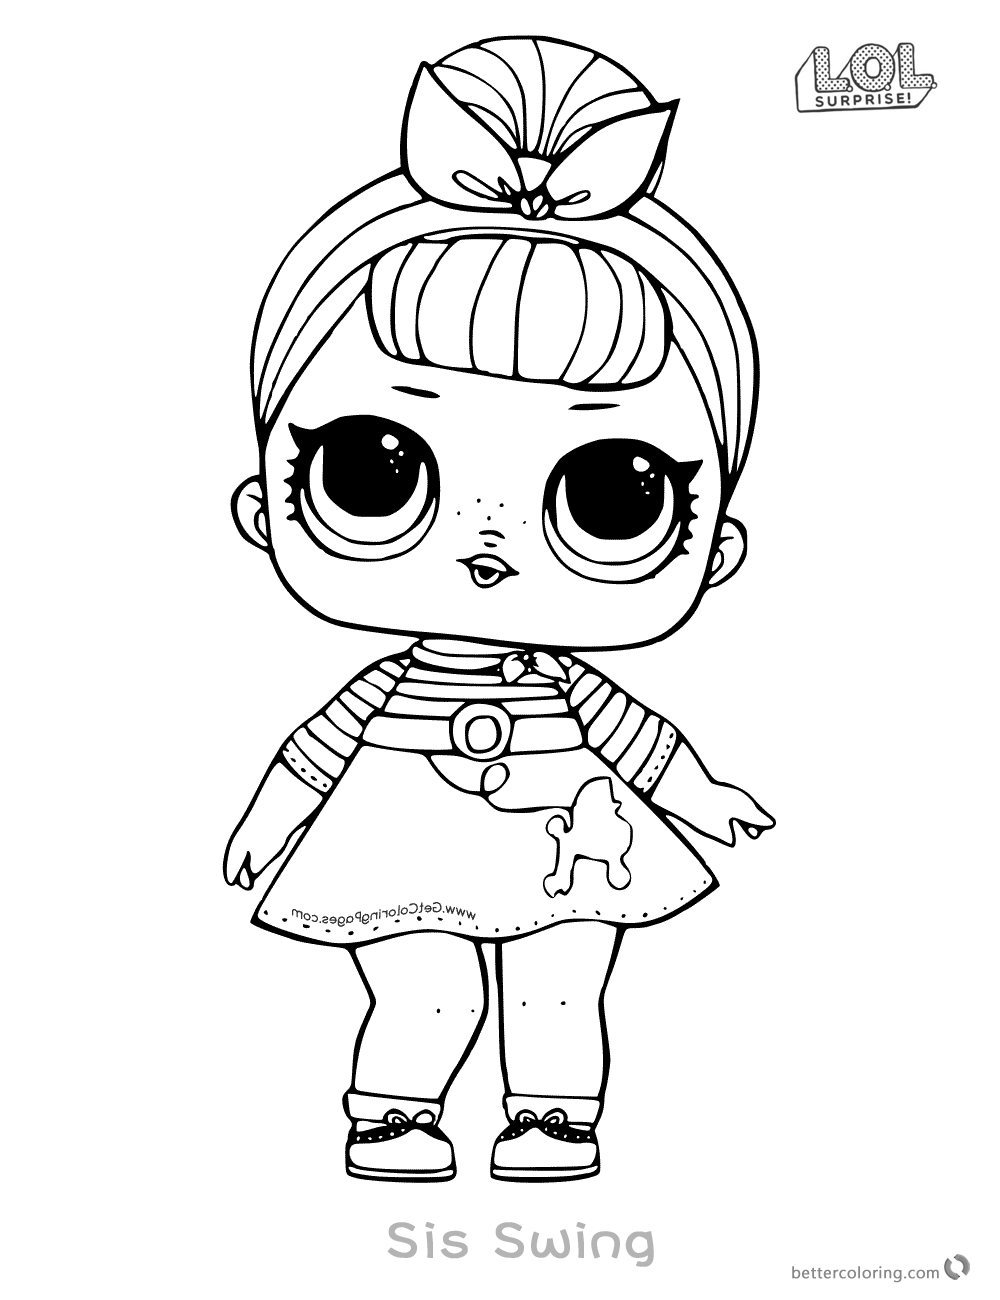 Lol Surprise Doll Coloring Pages Sis Swing Coloring Pages Cool